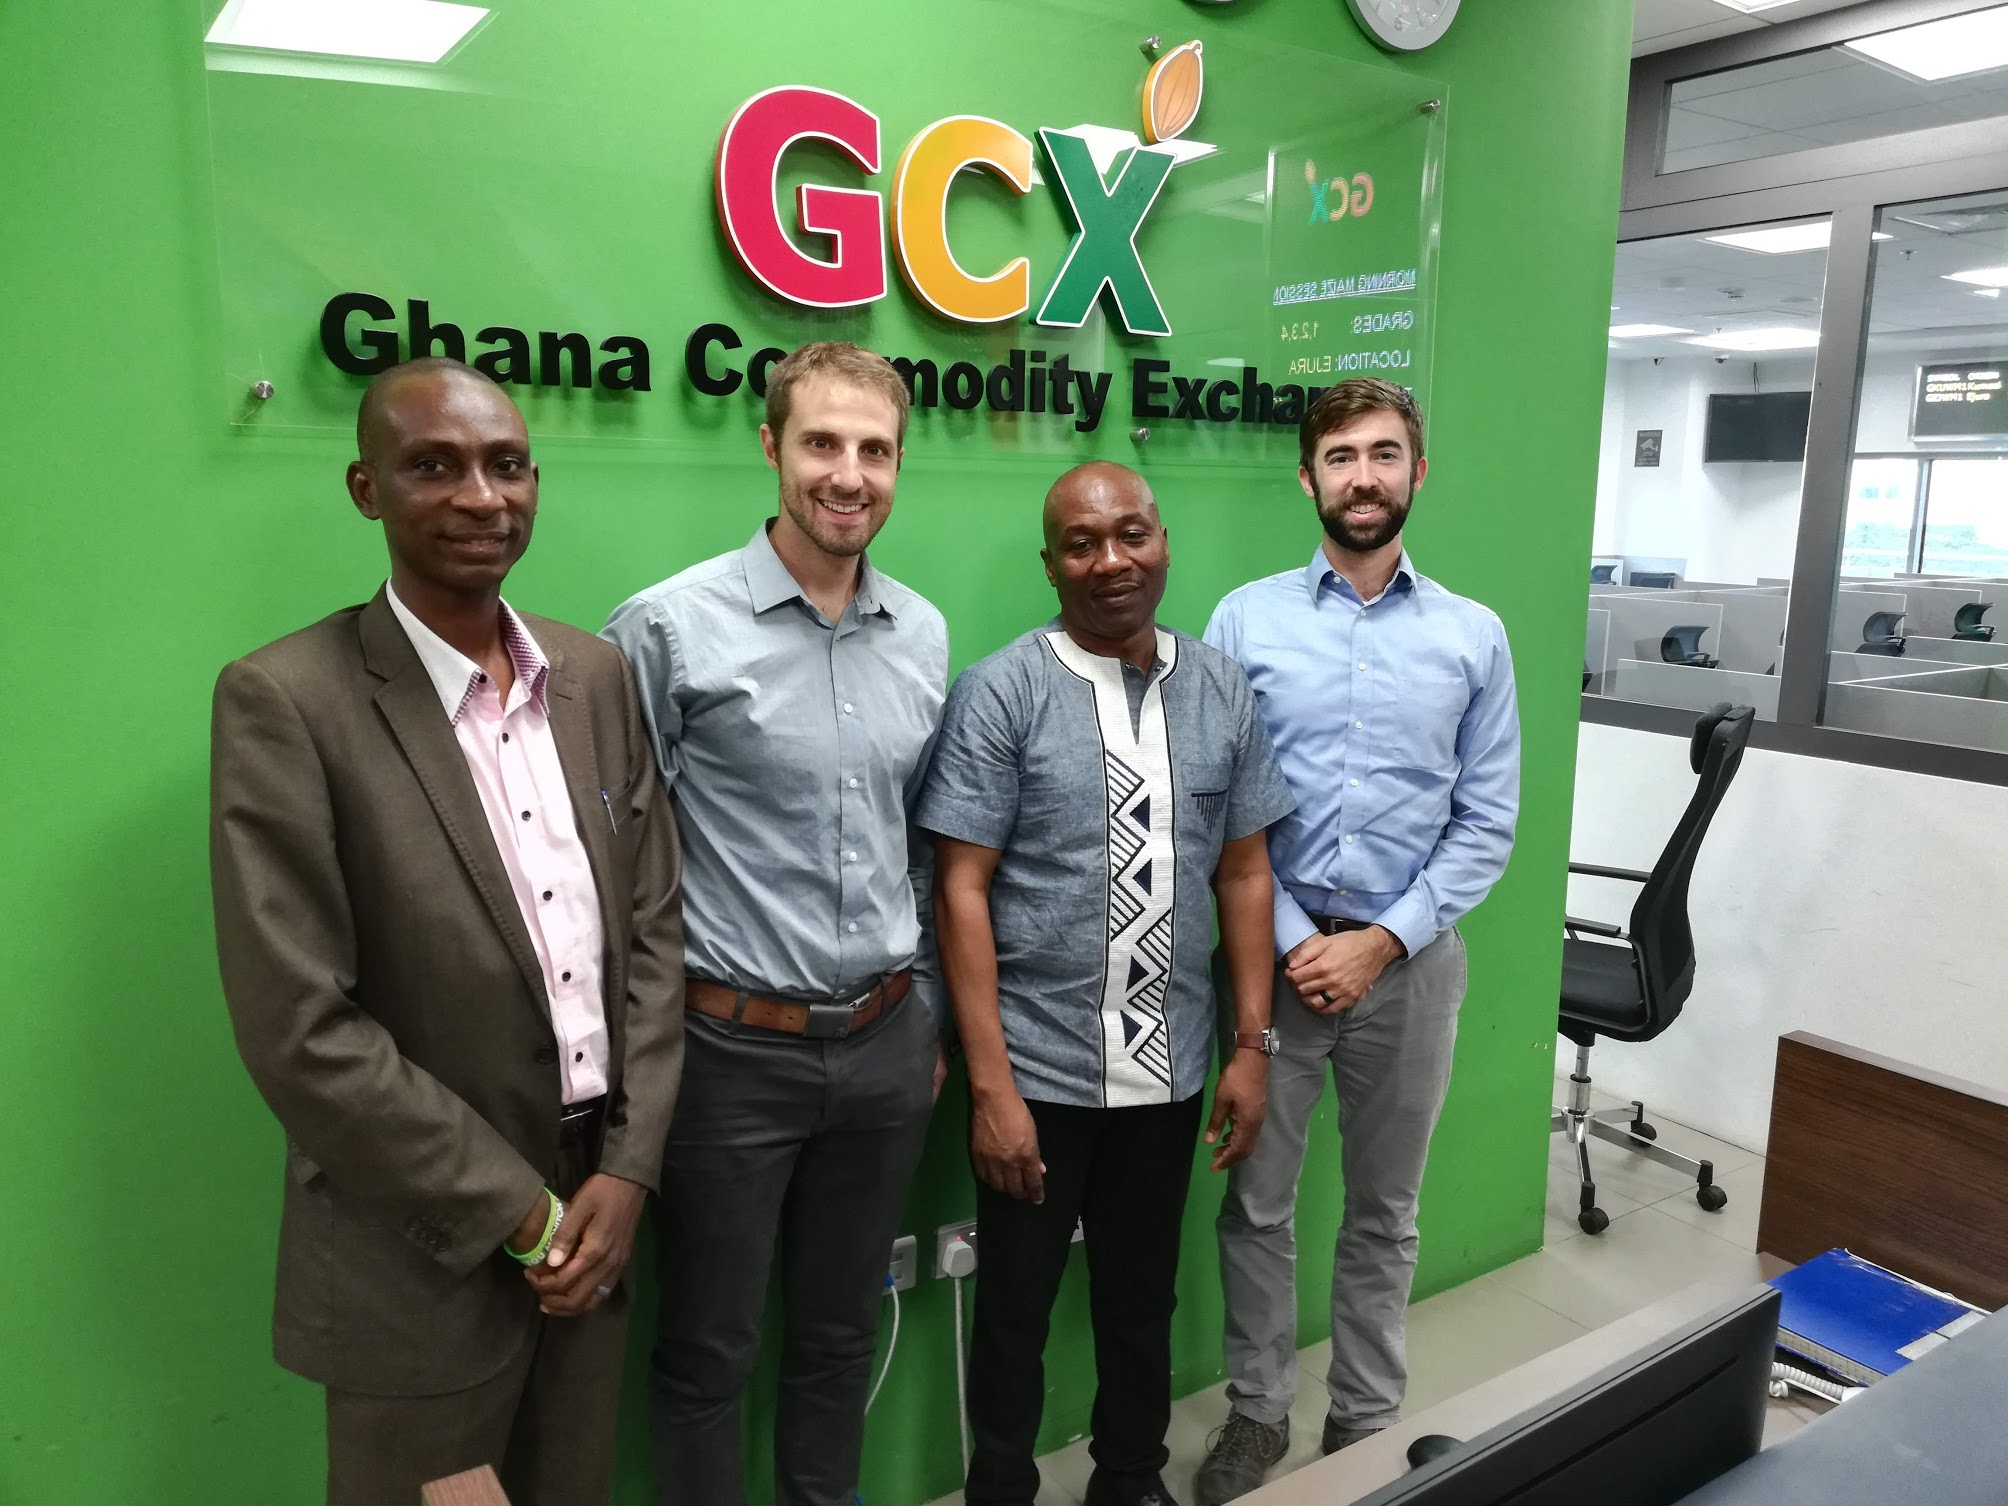 Dr. Gallenstein at Ghana Commodity Exchange